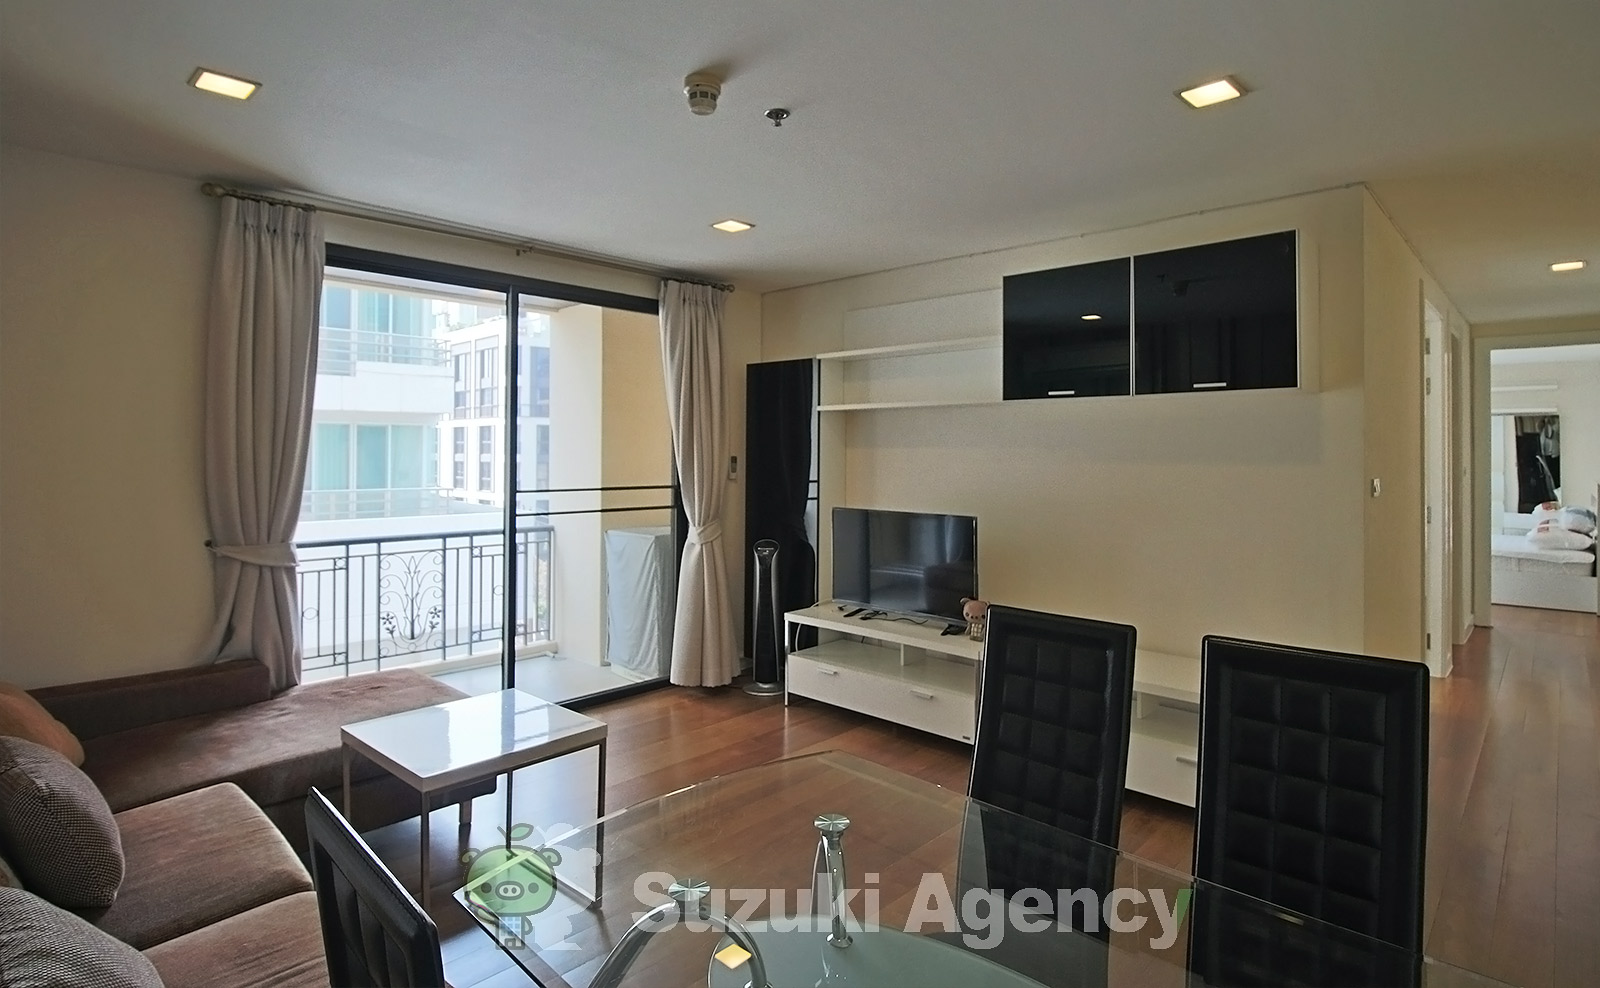 Prime Mansion Sukhumvit 31:2Bed Room Photos No.1